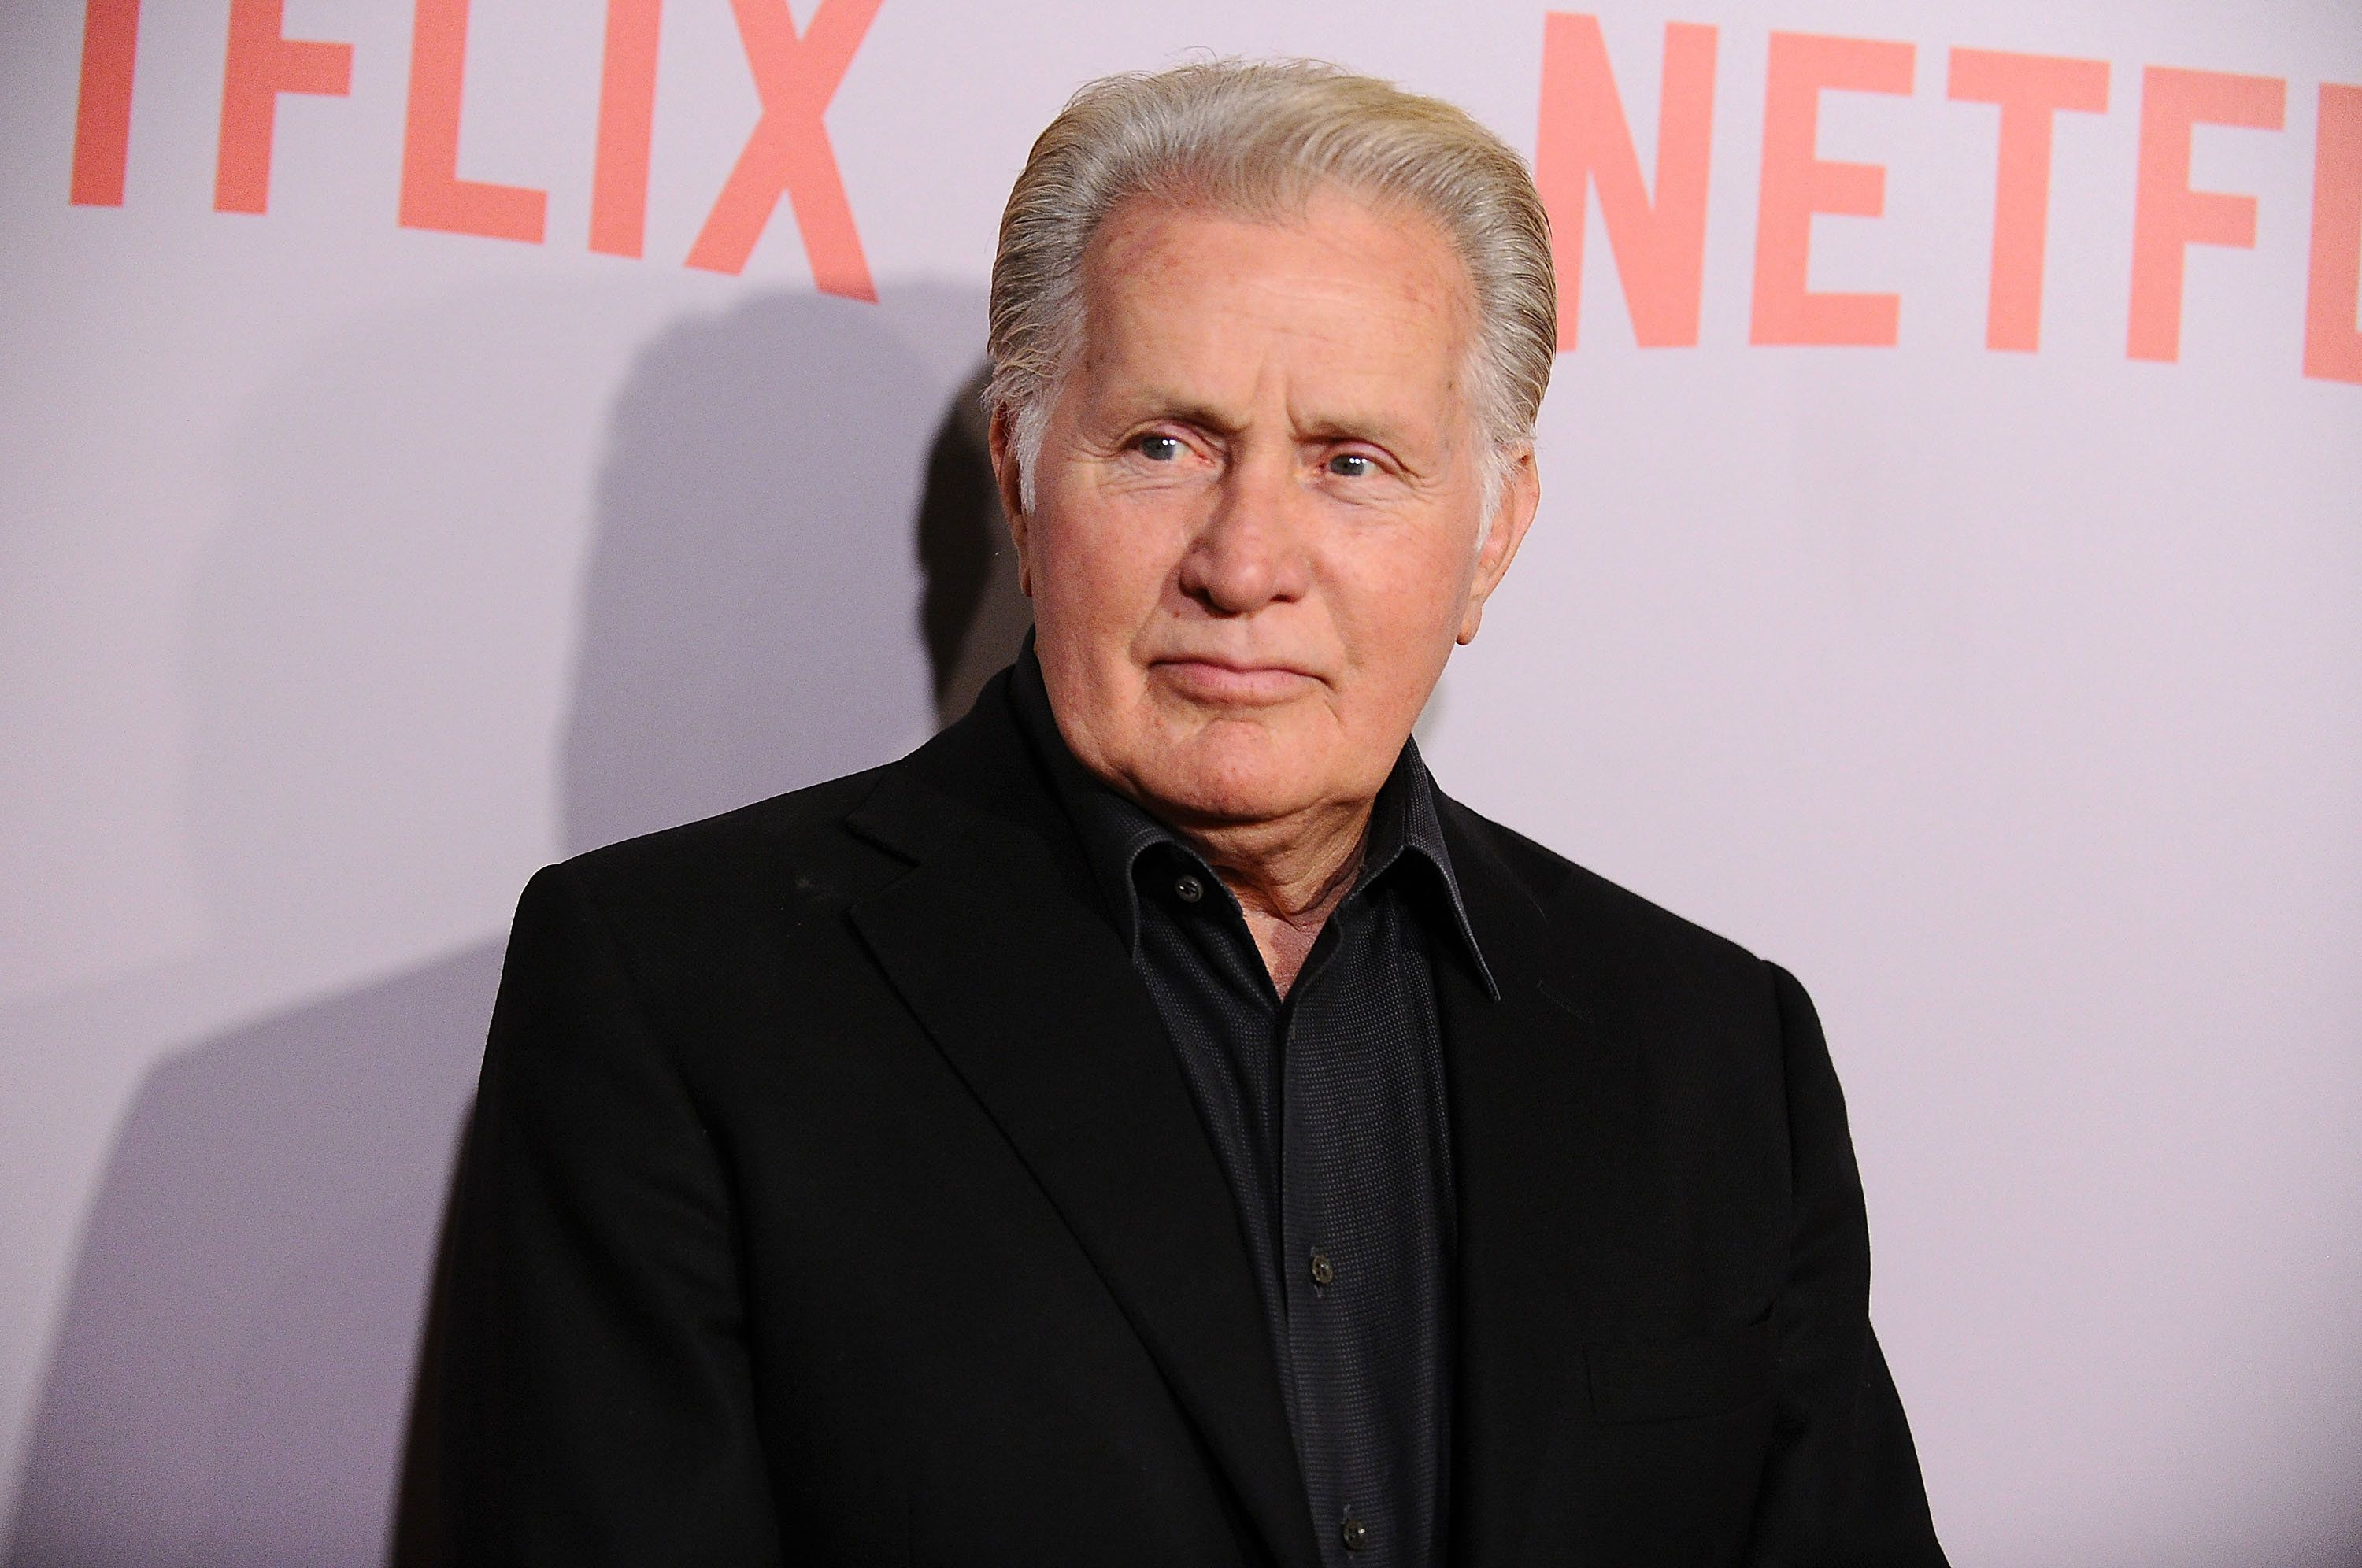 WEST HOLLYWOOD, CA - MAY 26:  Actor Martin Sheen attends Netflix's 'Grace & Frankie' Q&A screening event at Pacific Design Center on May 26, 2015 in West Hollywood, California.  (Photo by Jason LaVeris/FilmMagic)